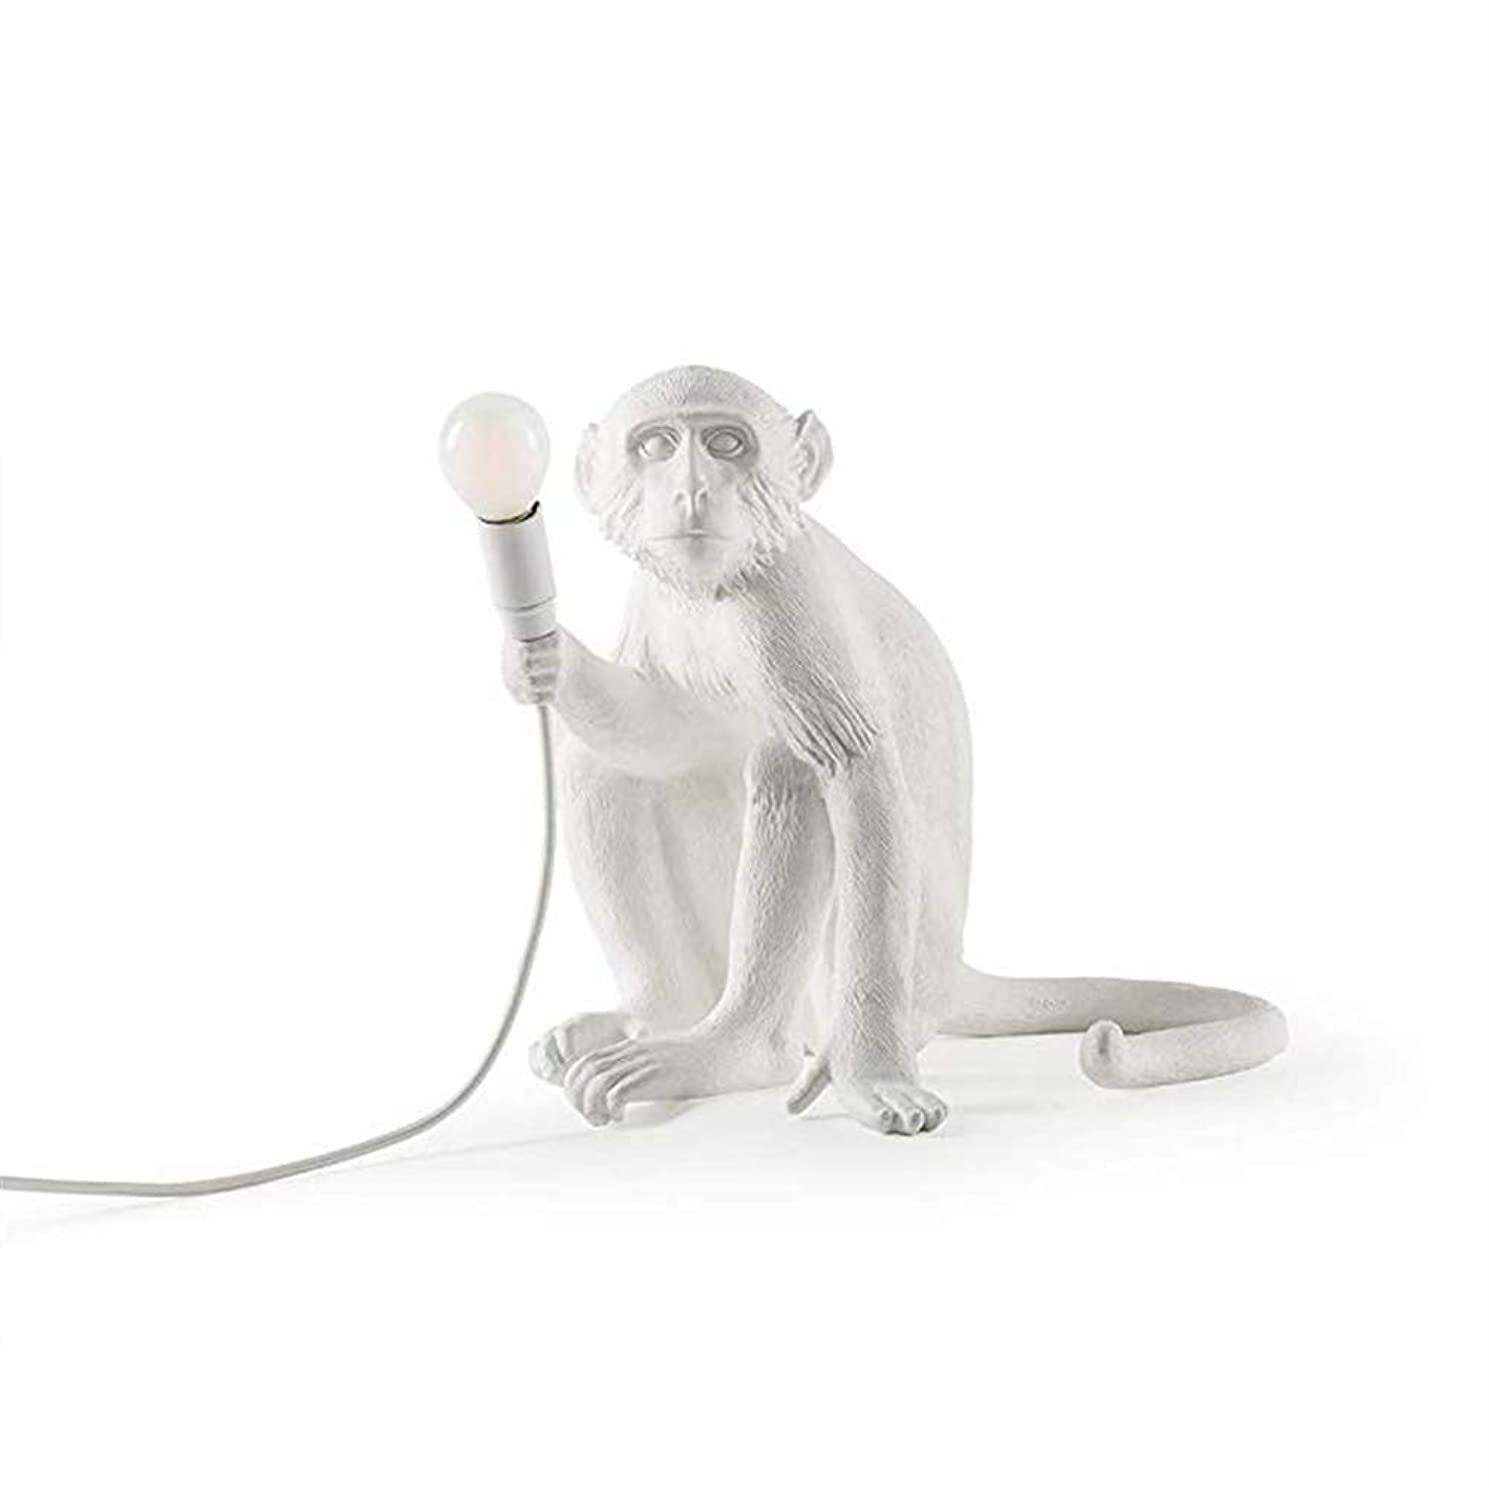 Modern Resin lamp,Sitting Monkey Table Light,Fashion Simple Art Nordic Replicas Sitting Monkey Lamp,Creative Design for Home Lighting Bar Cafe Gift,White